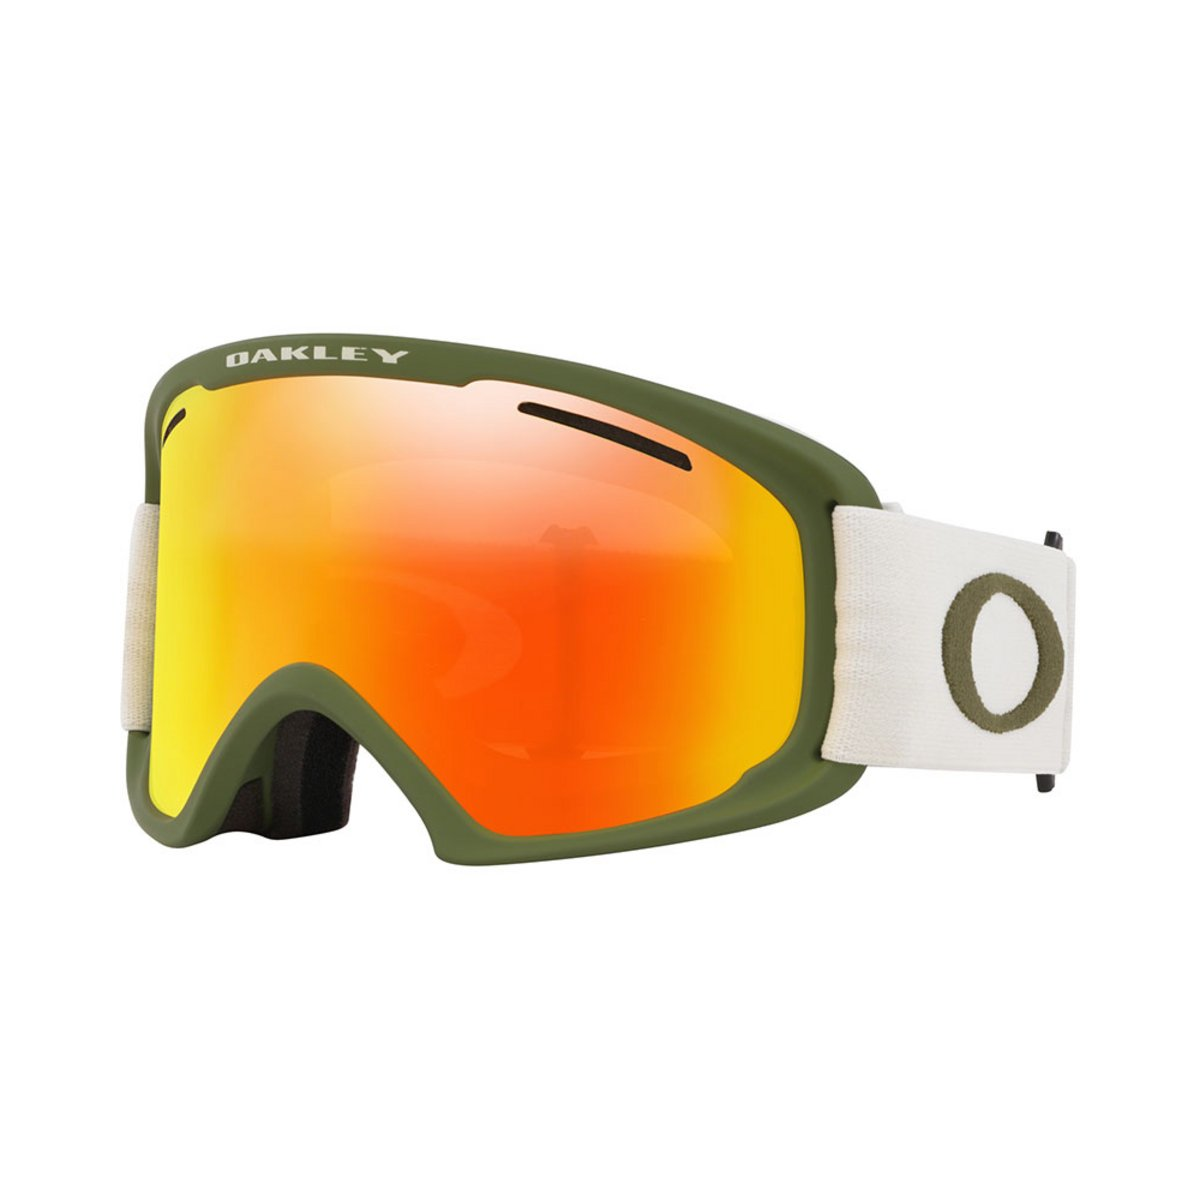 Oakley O Frame 2.0 Pro XL Dark Brush Grey / Fire Iridium + Persimmon Goggles 2019 / 2020 0